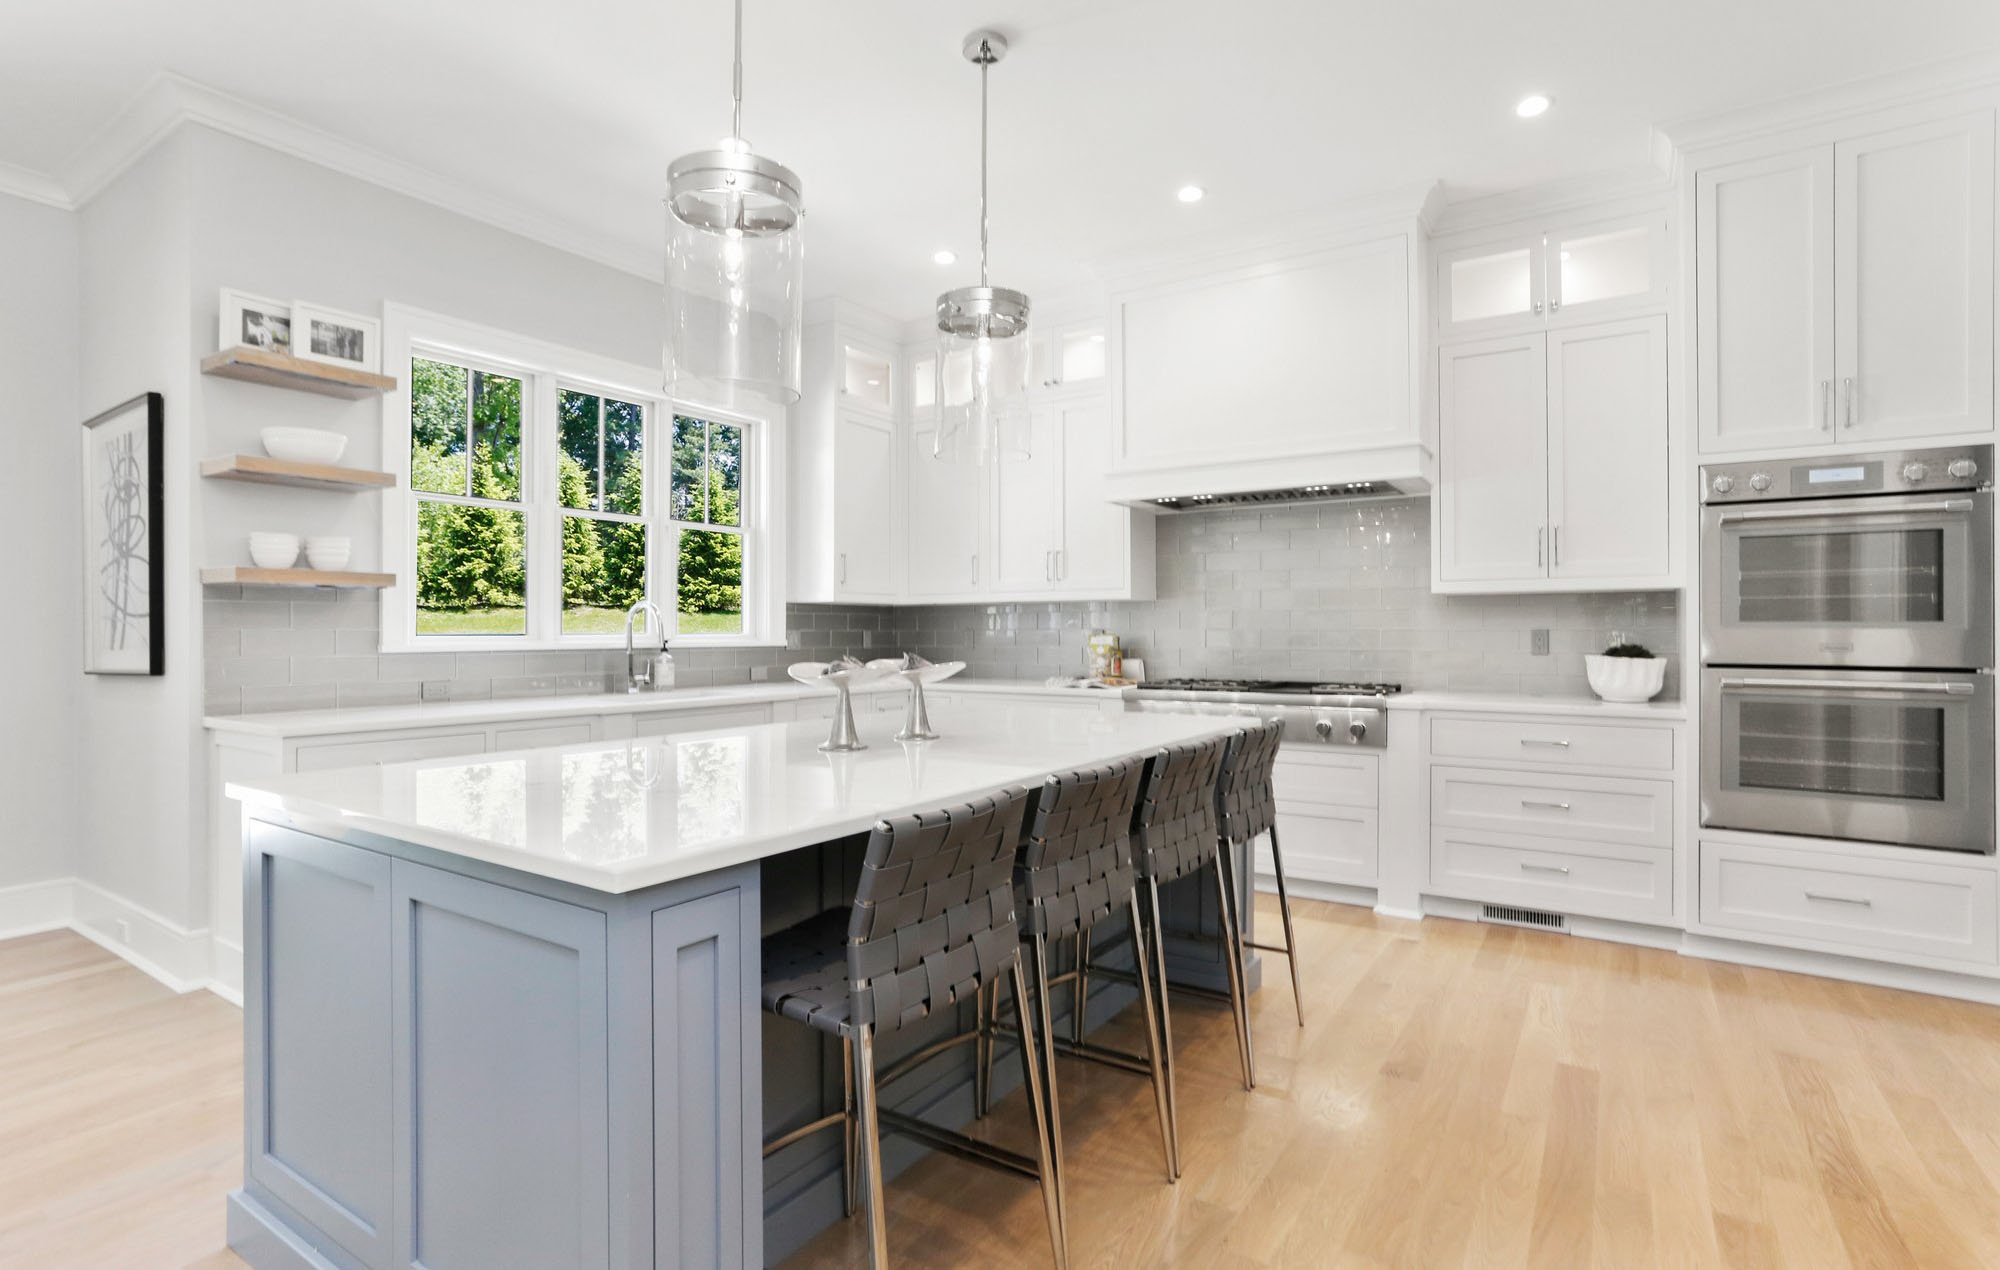 Here's another view of this beautiful kitchen. The two tone cabinet design adds contrast and keeps the kitchen from looking too pale.